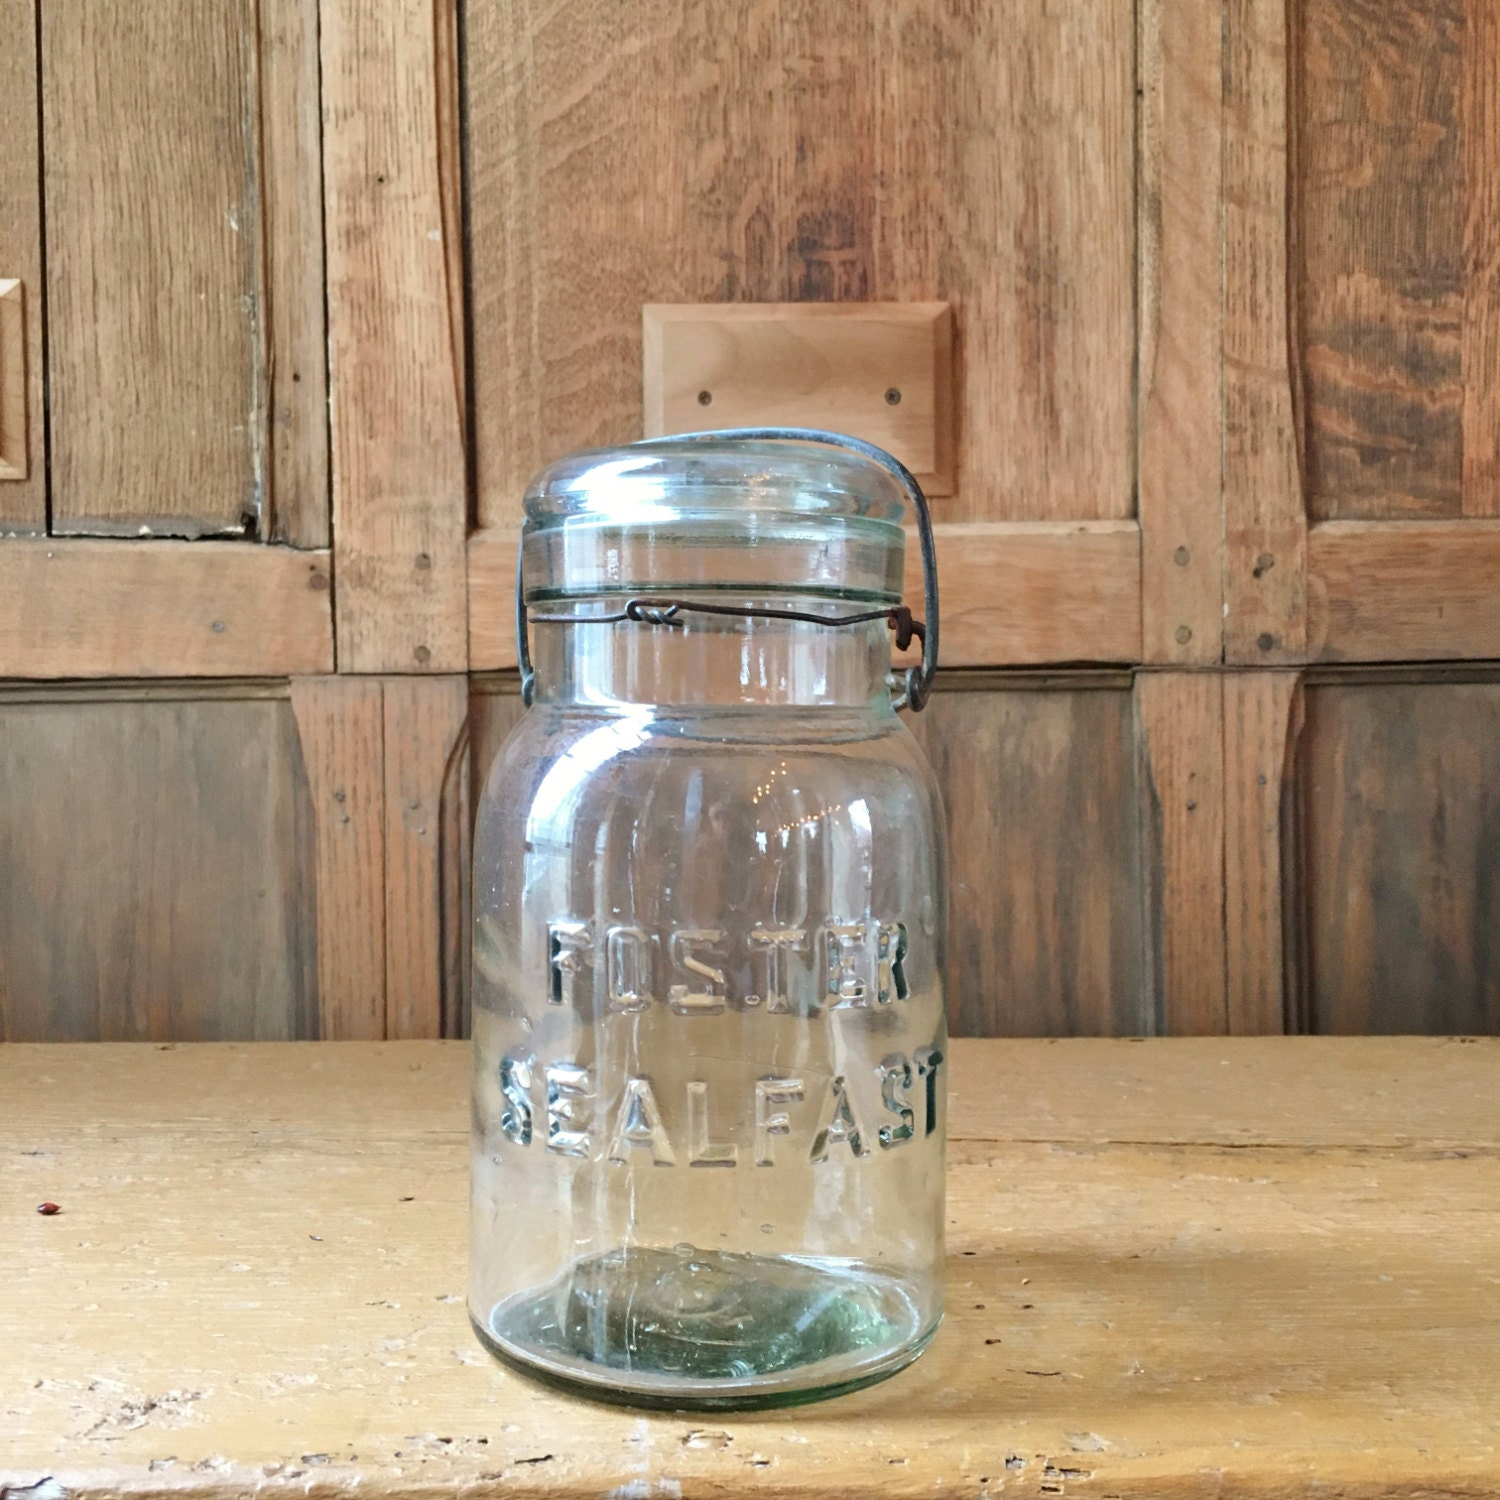 vintage mason jar foster sealfast glass jar vintage kitchen vintage mason jar foster sealfast glass jar vintage kitchen storage kitchen canister green glass mason jar decor